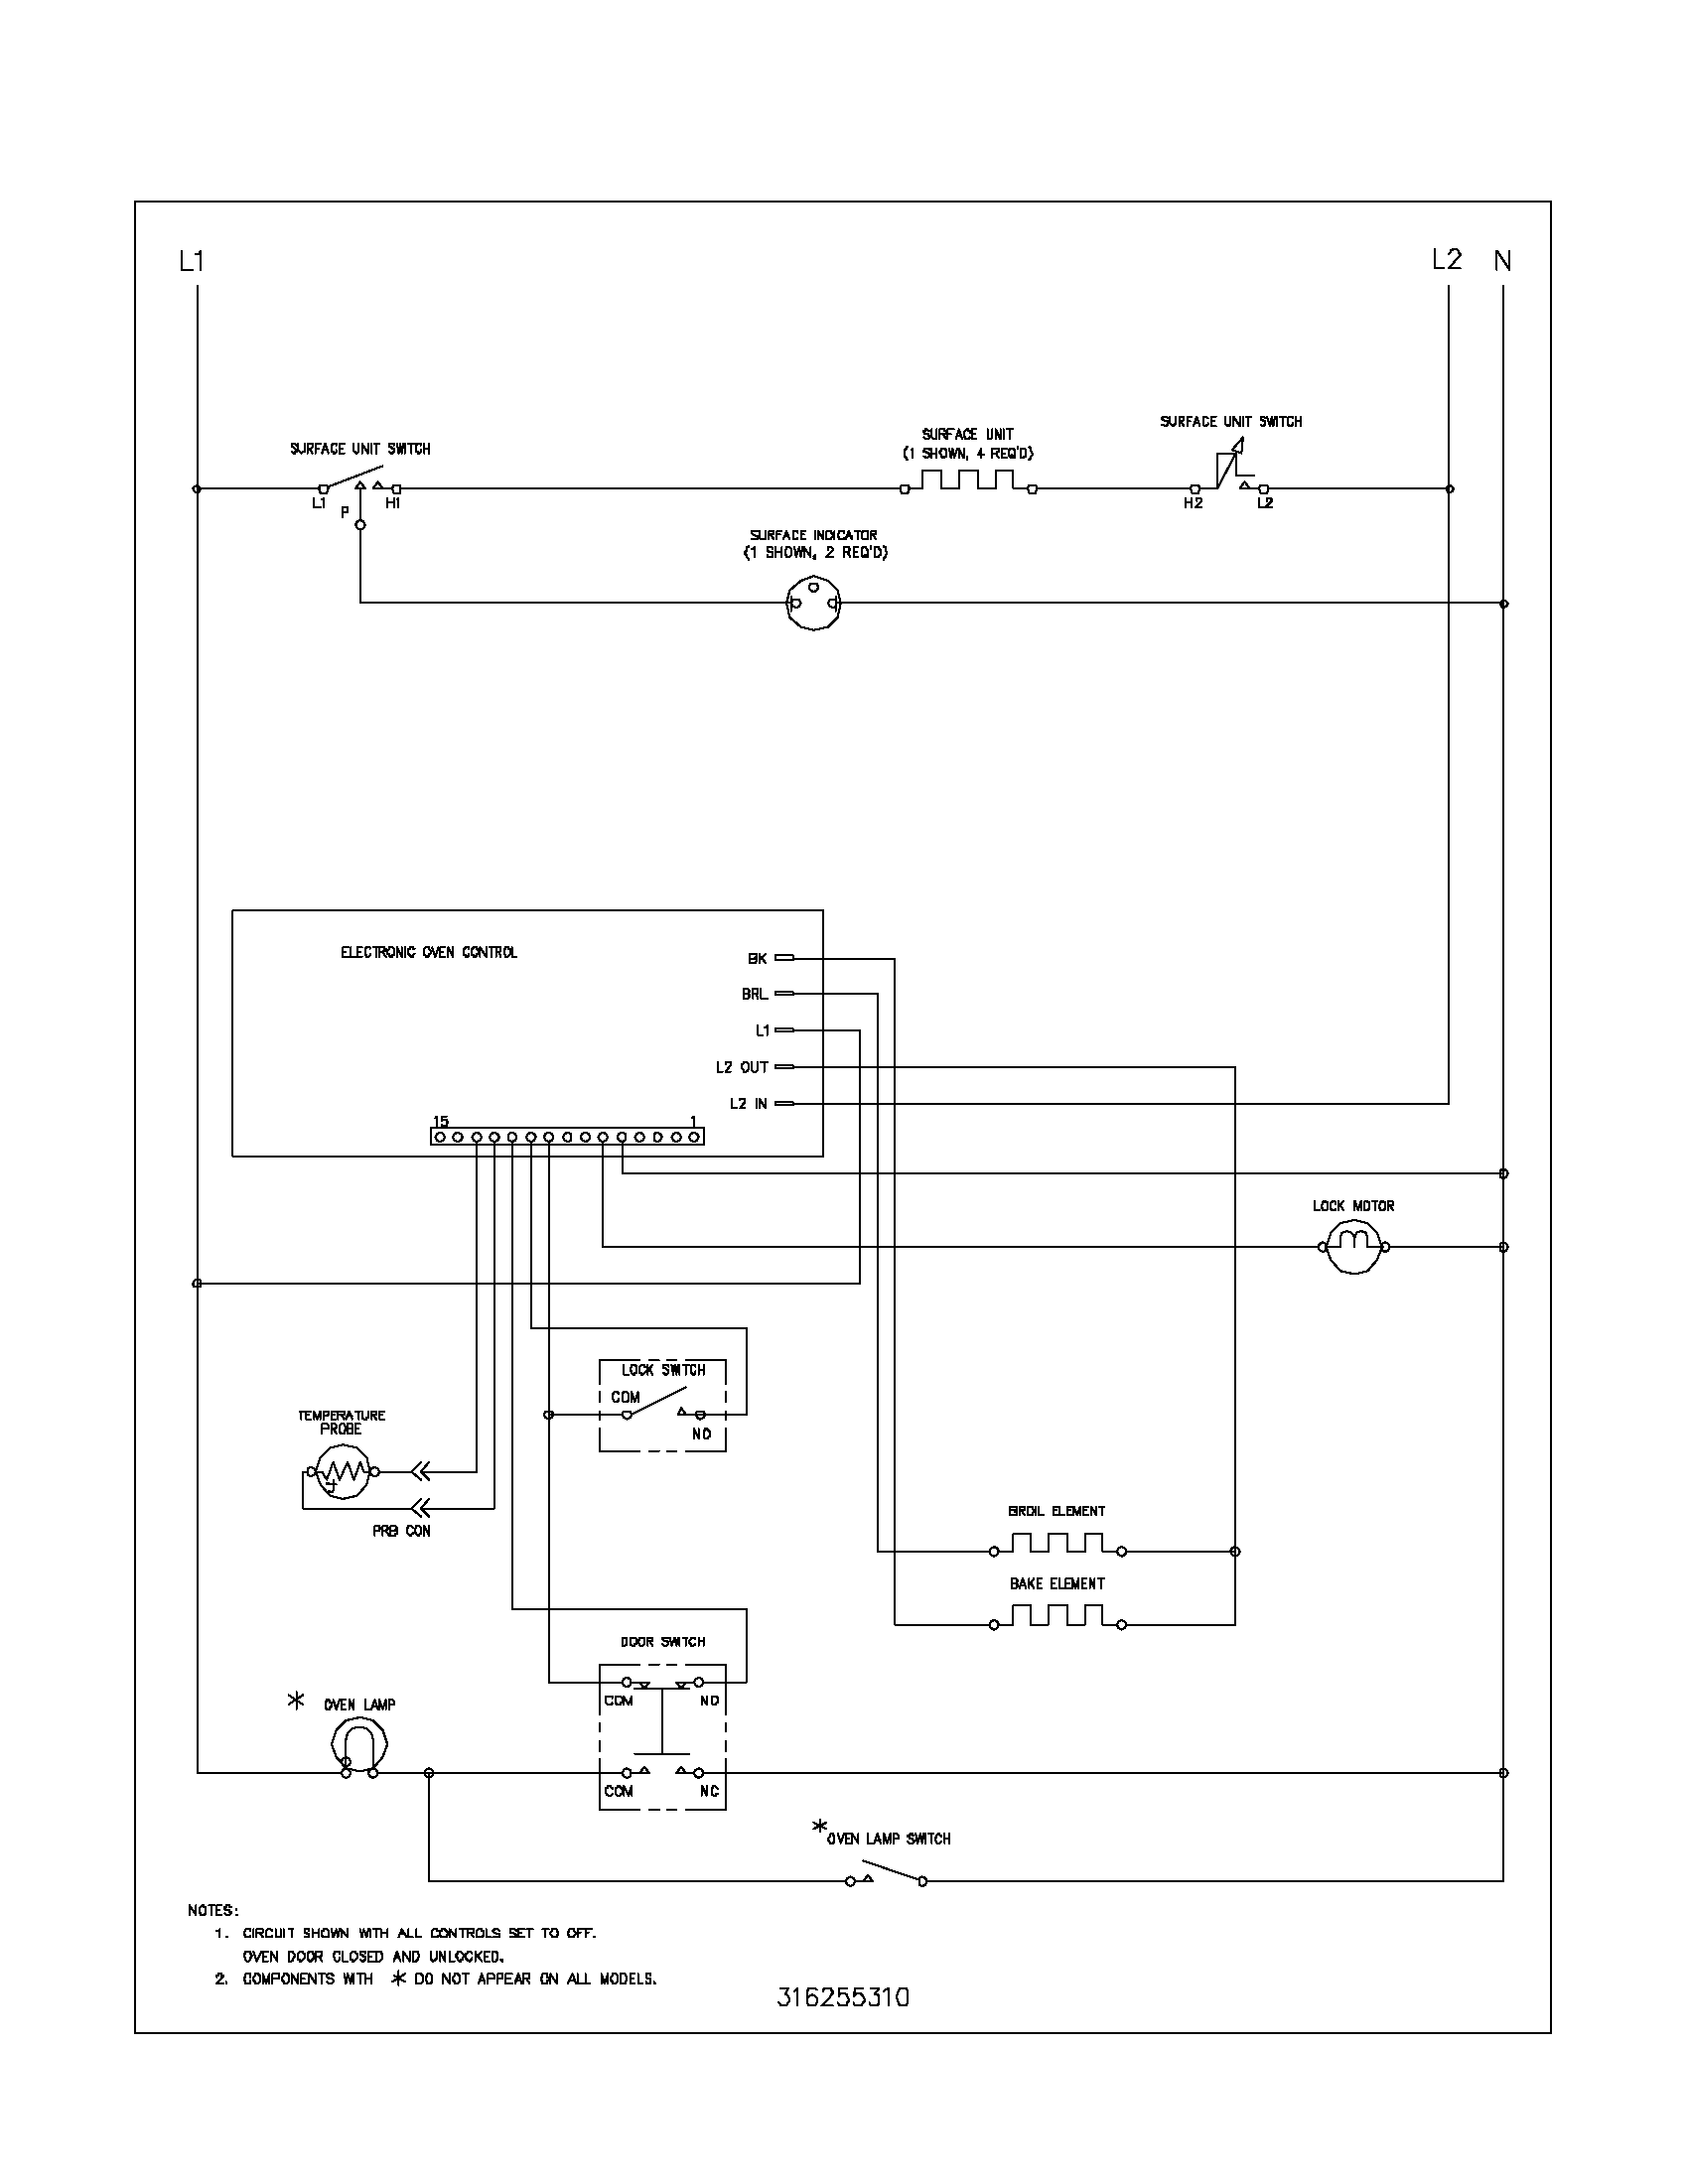 Ge Range Schematics Automotive Wiring Diagram Electric Stove Schematic Library Rh 2 Pgserver De Manuals Spectra